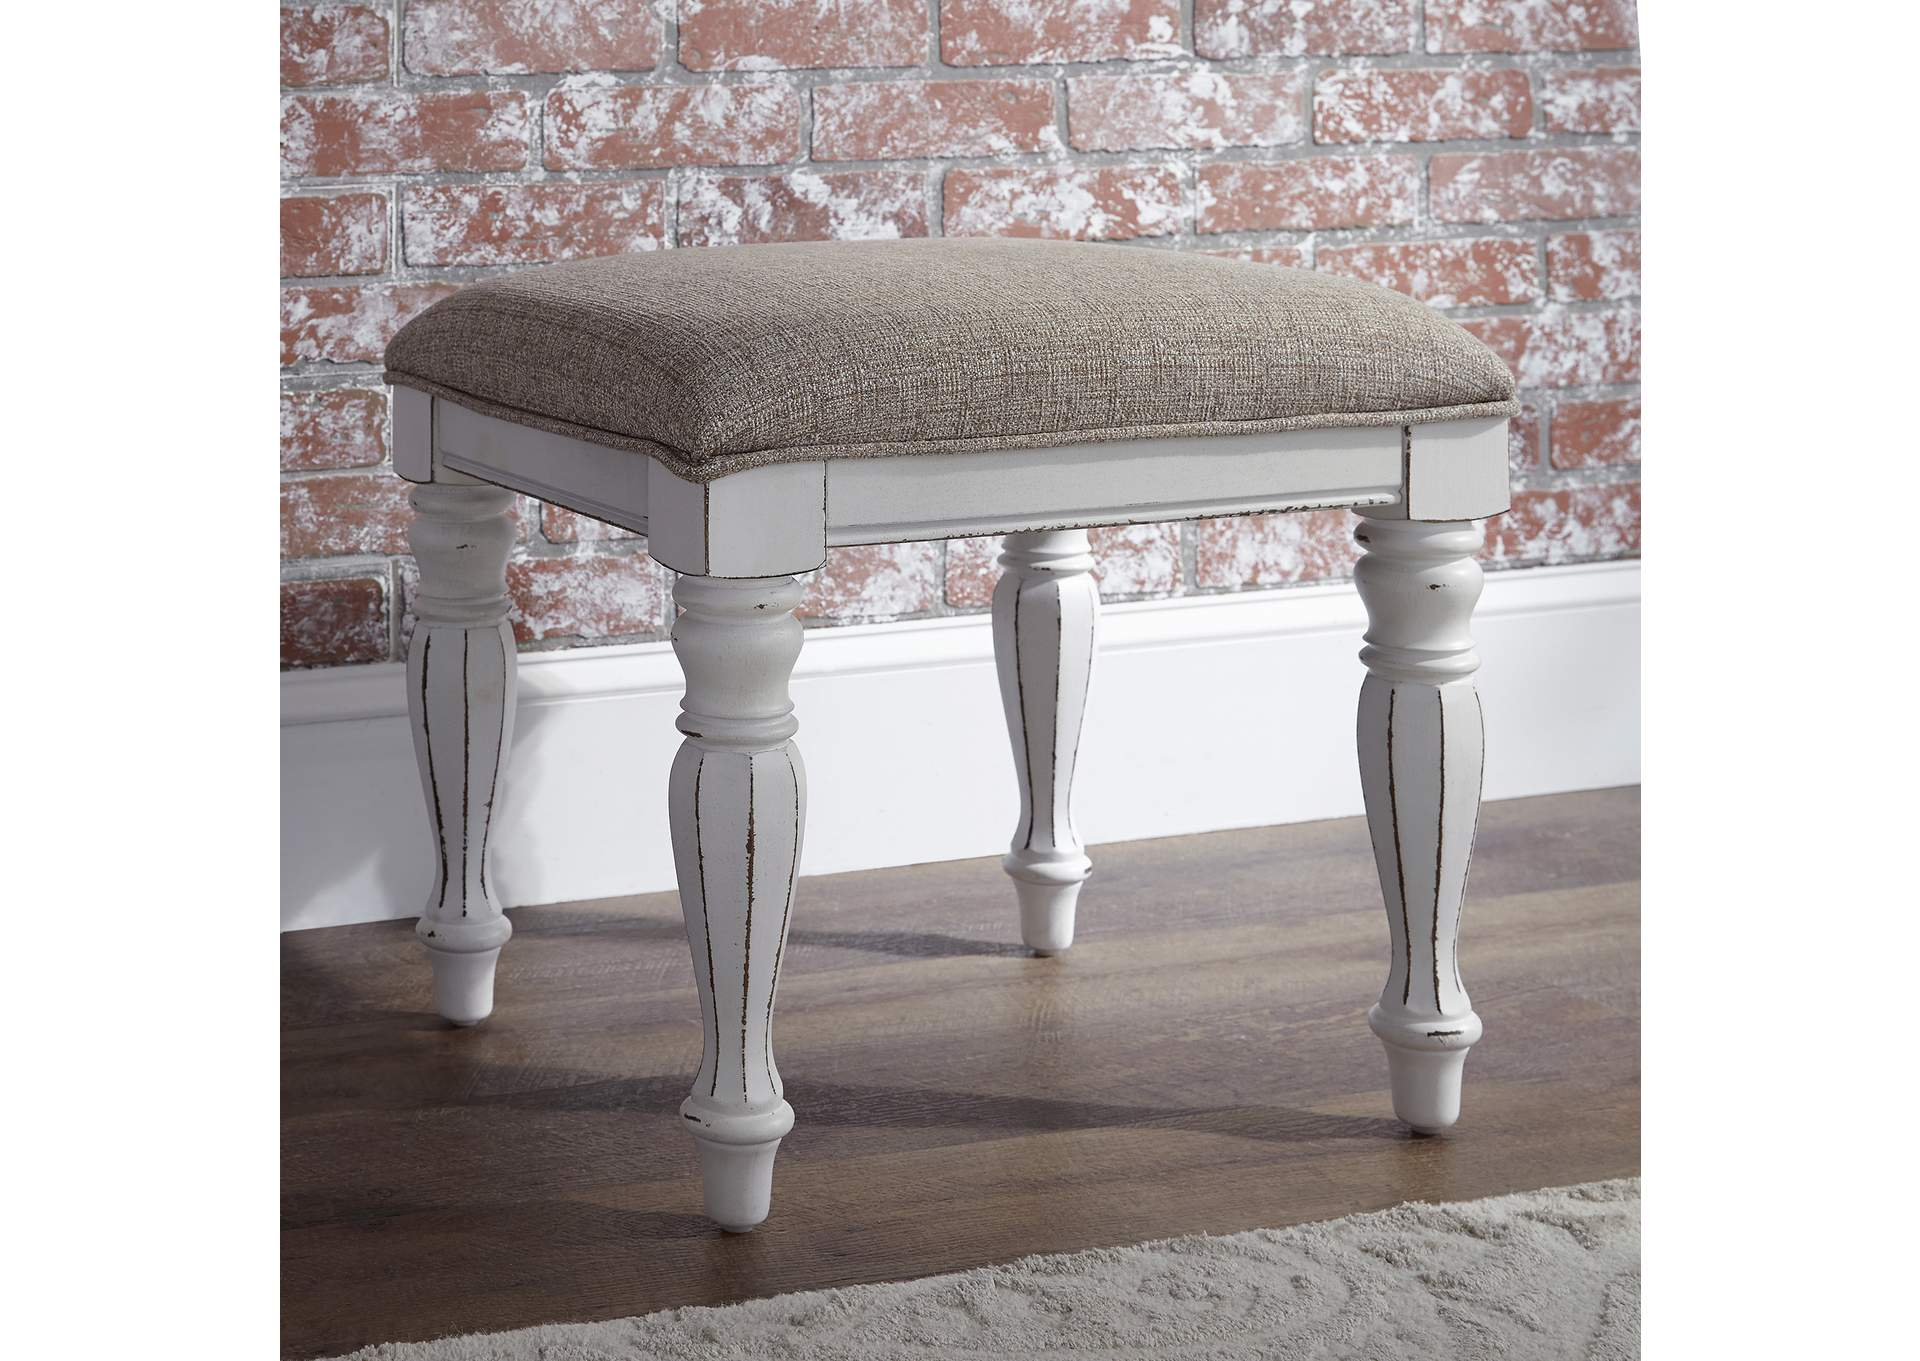 Remarkable Country House Furniture Magnolia Manor Antique White Vanity Unemploymentrelief Wooden Chair Designs For Living Room Unemploymentrelieforg